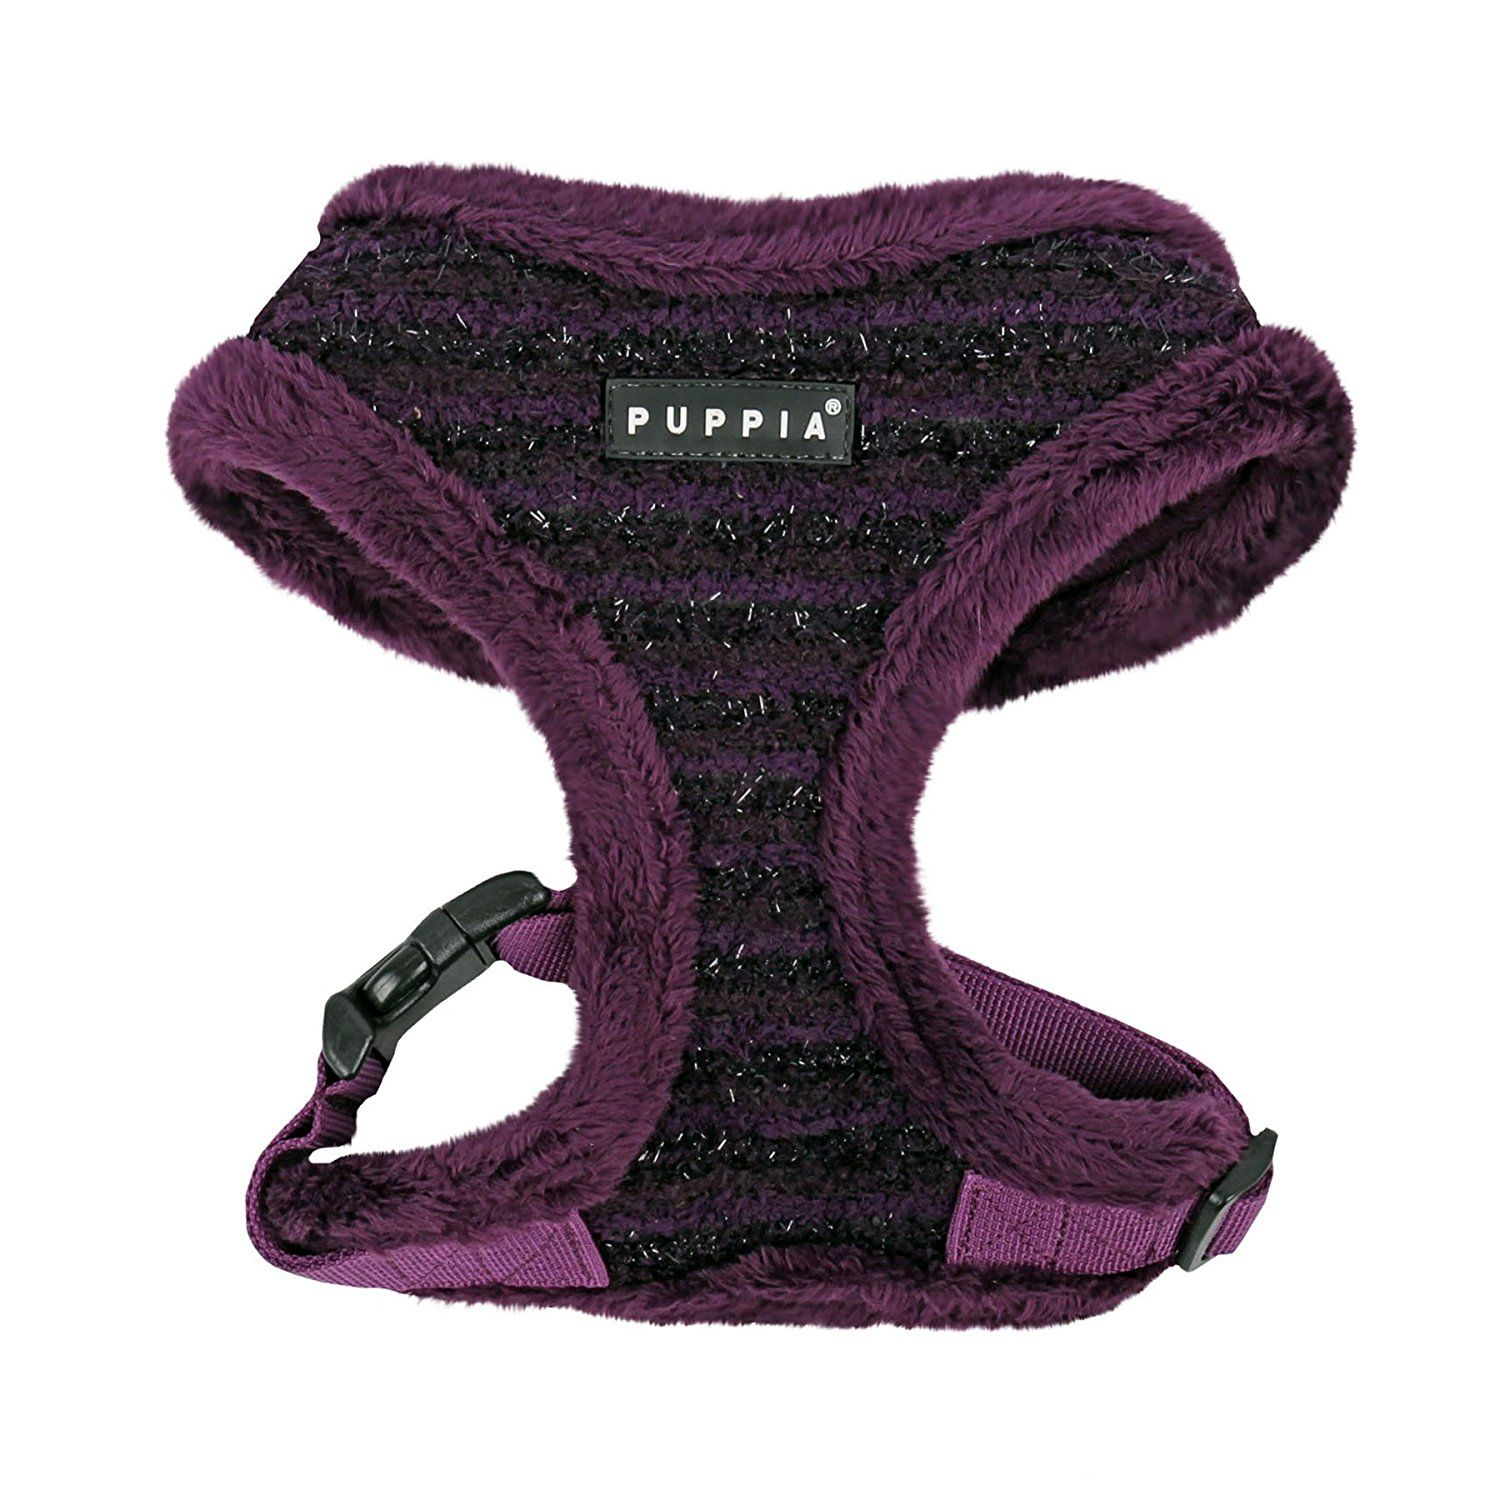 Puppia Authentic Wafer Harness A, Large, Purple ** Check out this great product. (This is an affiliate link and I receive a commission for the sales)